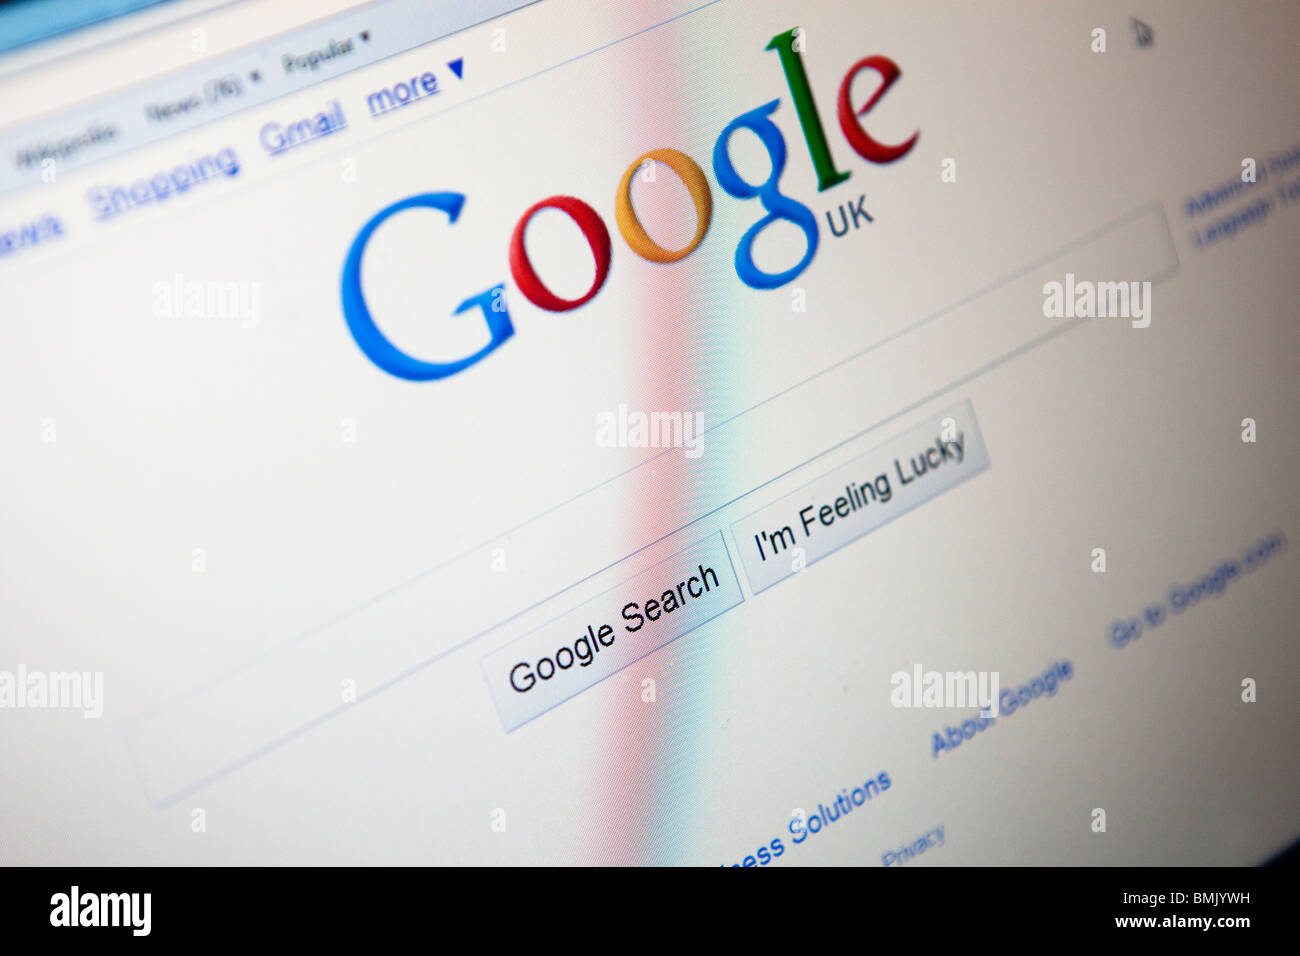 Close up of a computer monitor / screen showing the Google search engine website - Stock Image